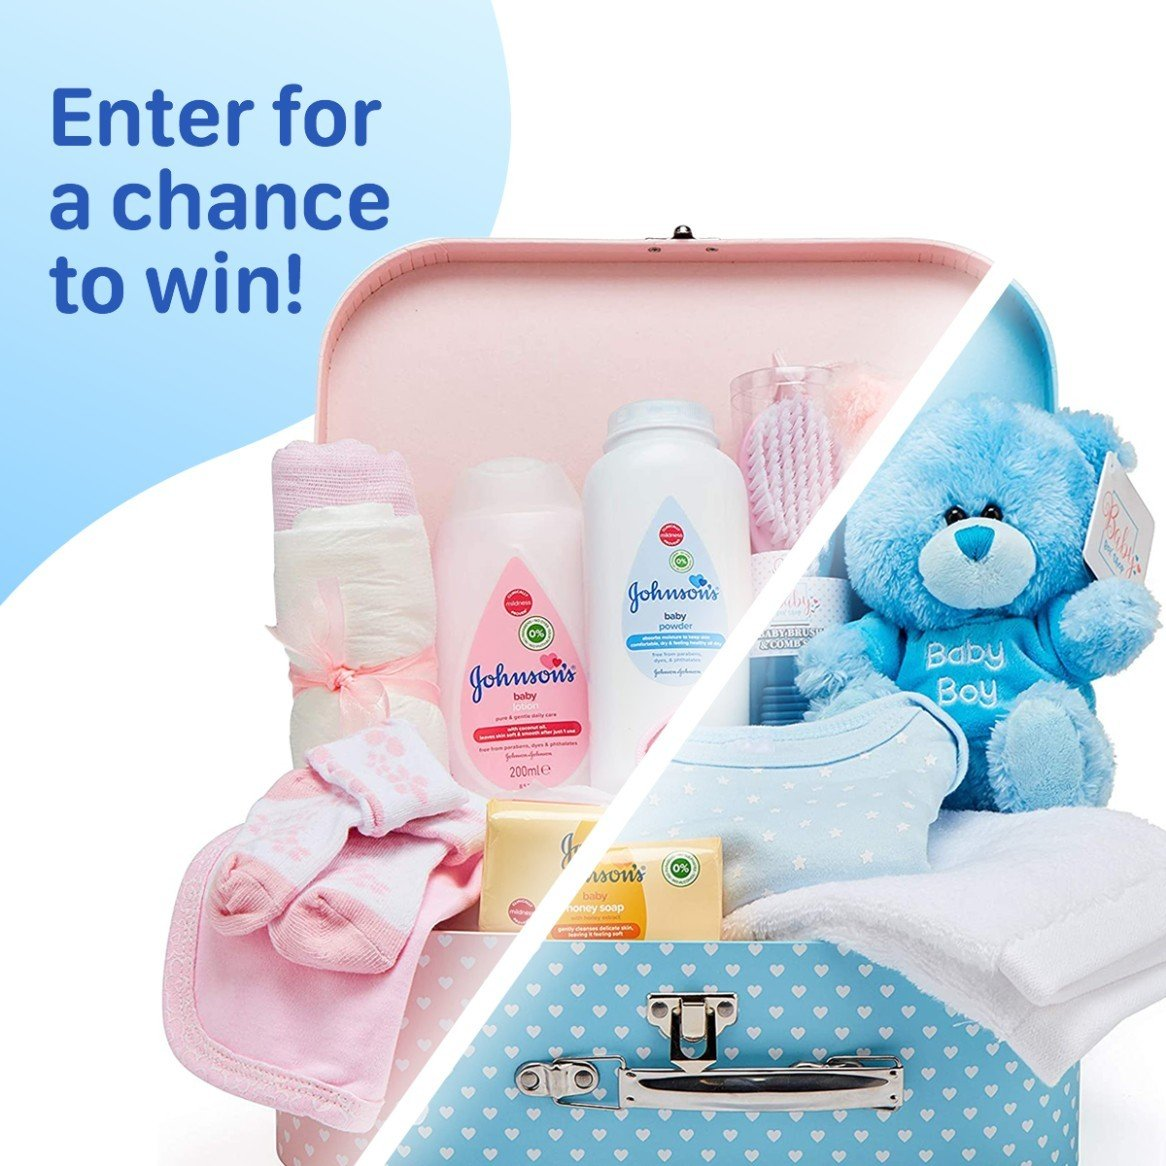 WIN a Boy OR Girls New Born Baby Gift Set!